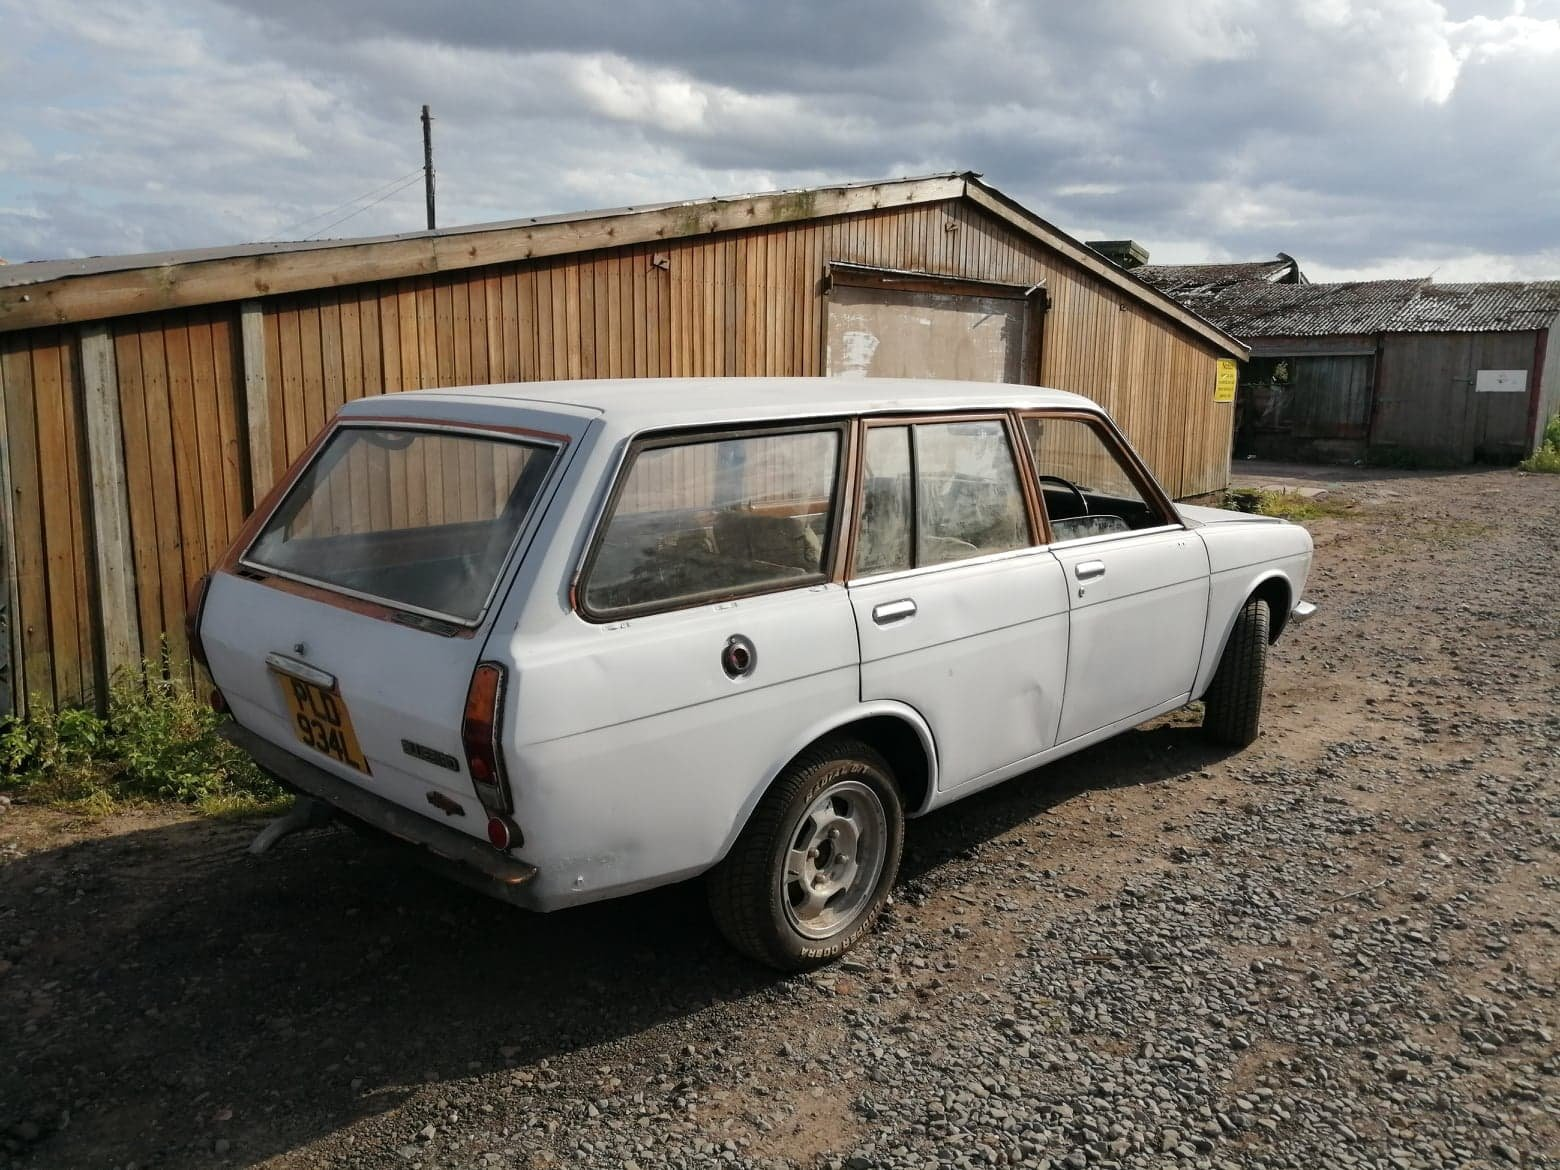 1972 Datsun 510 Bluebird Wagon For Sale | Car And Classic